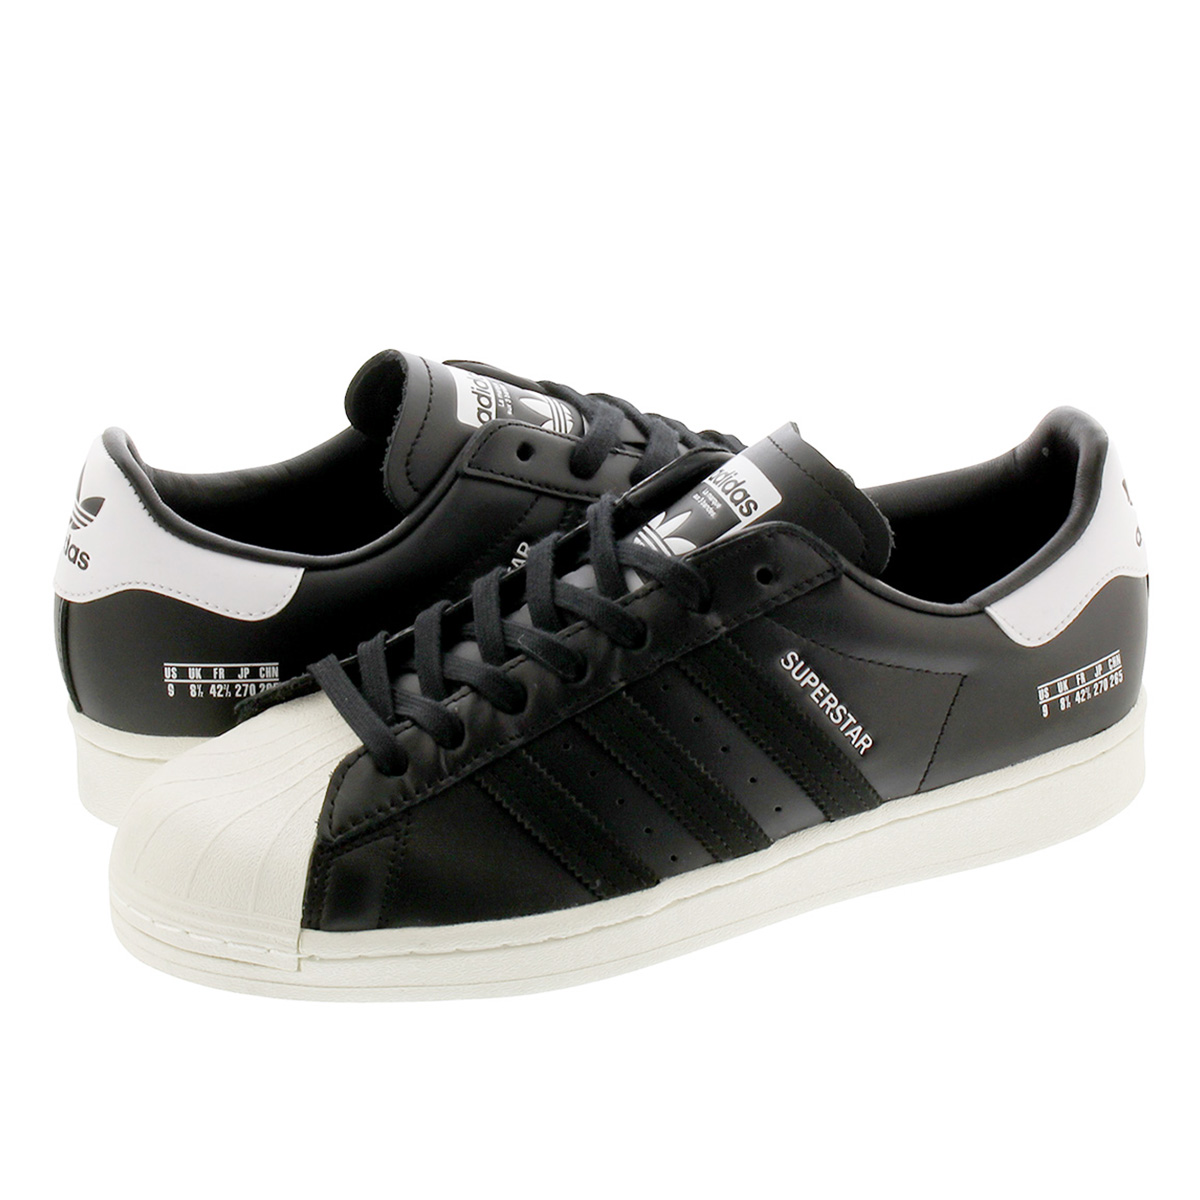 【スーパーSALE】adidas SUPERSTAR アディダス スーパースター CORE BLACK/CORE BLACK/OFF WHITE fv2809